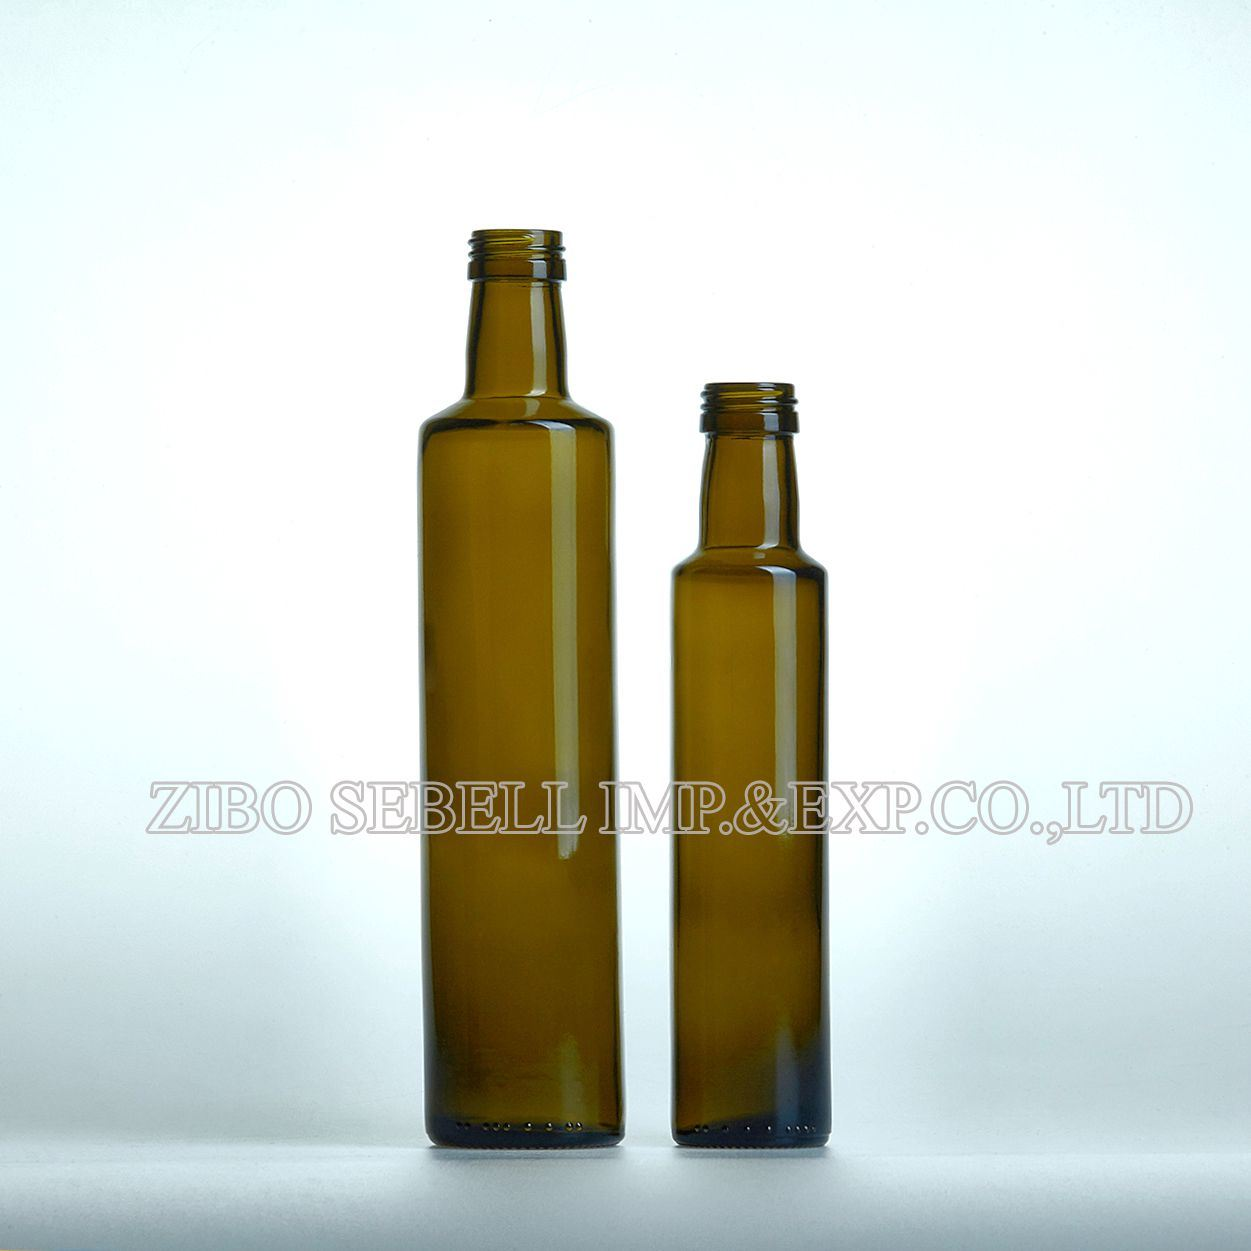 750ml Dark Green Glass Bottle for Wine with Cork Top (NA-010)